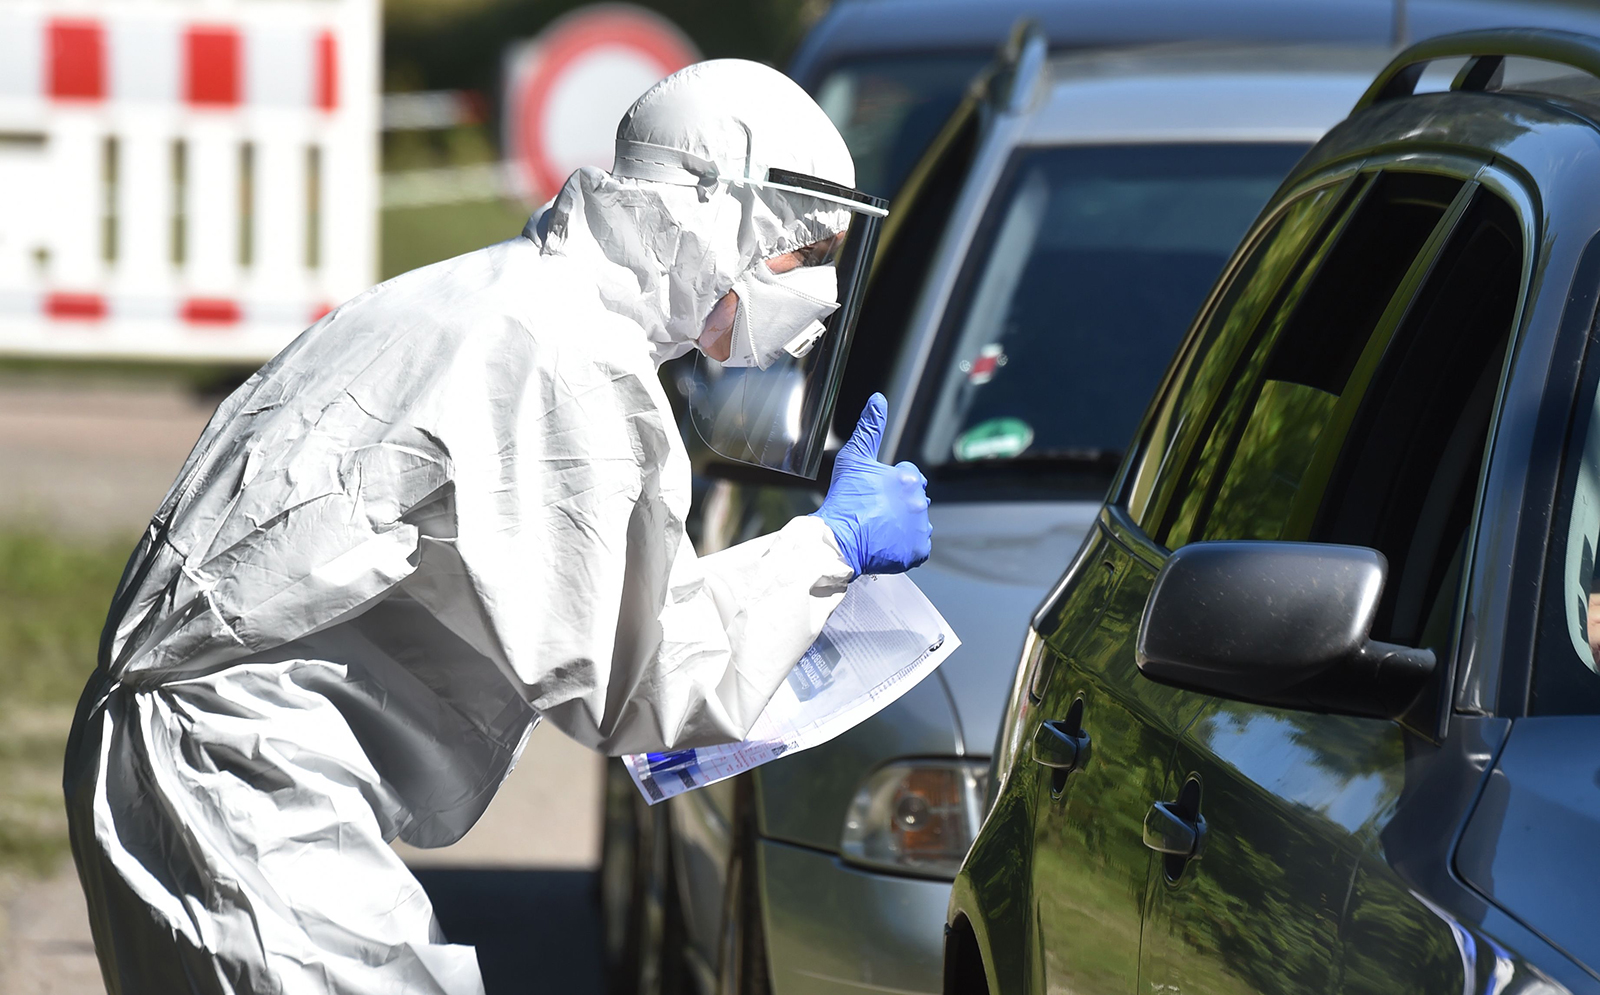 A tester gestures with to driver in a coronavirus drive through testing station in Mamming, southern Germany, after an outbreak of COVID-19 coronavirus at a farm on Monday, July 27.